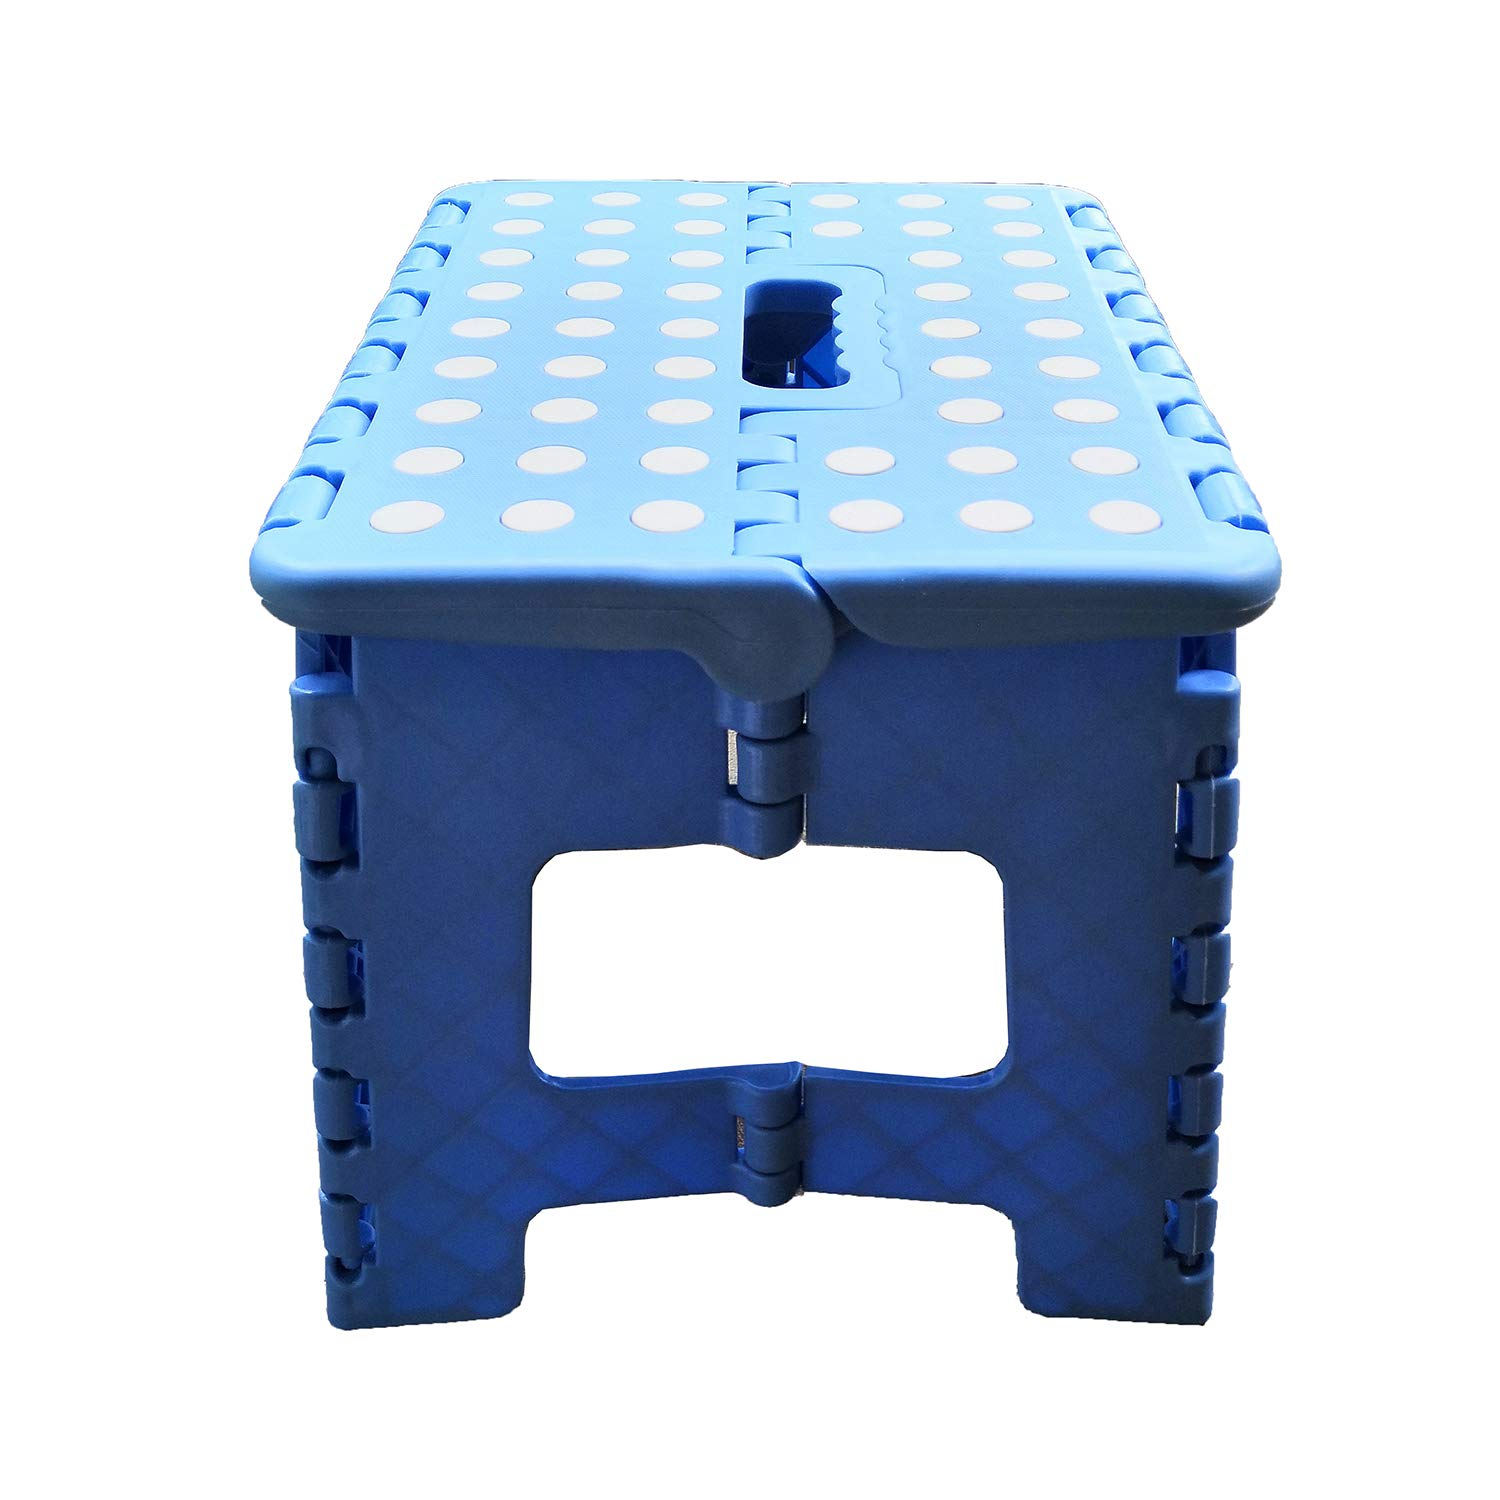 Blue ZLin Folding Step Stool with Handle Lightweight Sturdy and Safe Enough to Support Adults /& Kids Kitchen Garden Bathroom Stepping Stool Anti-Slip 9 x 11 Holds Up to 300 lbs